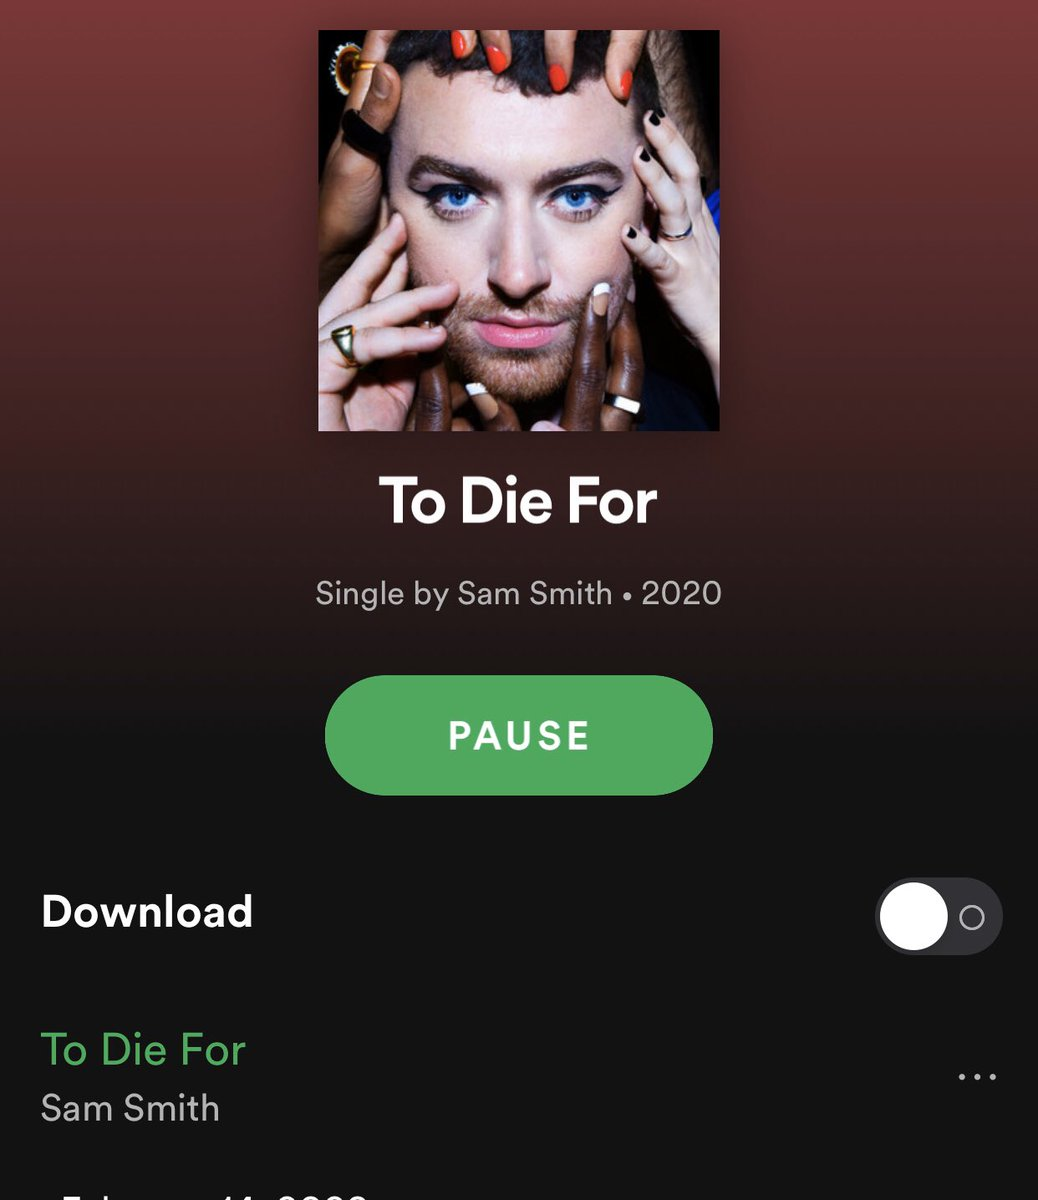 The only valentines gift I needed @samsmith ❤️#ToDieFor